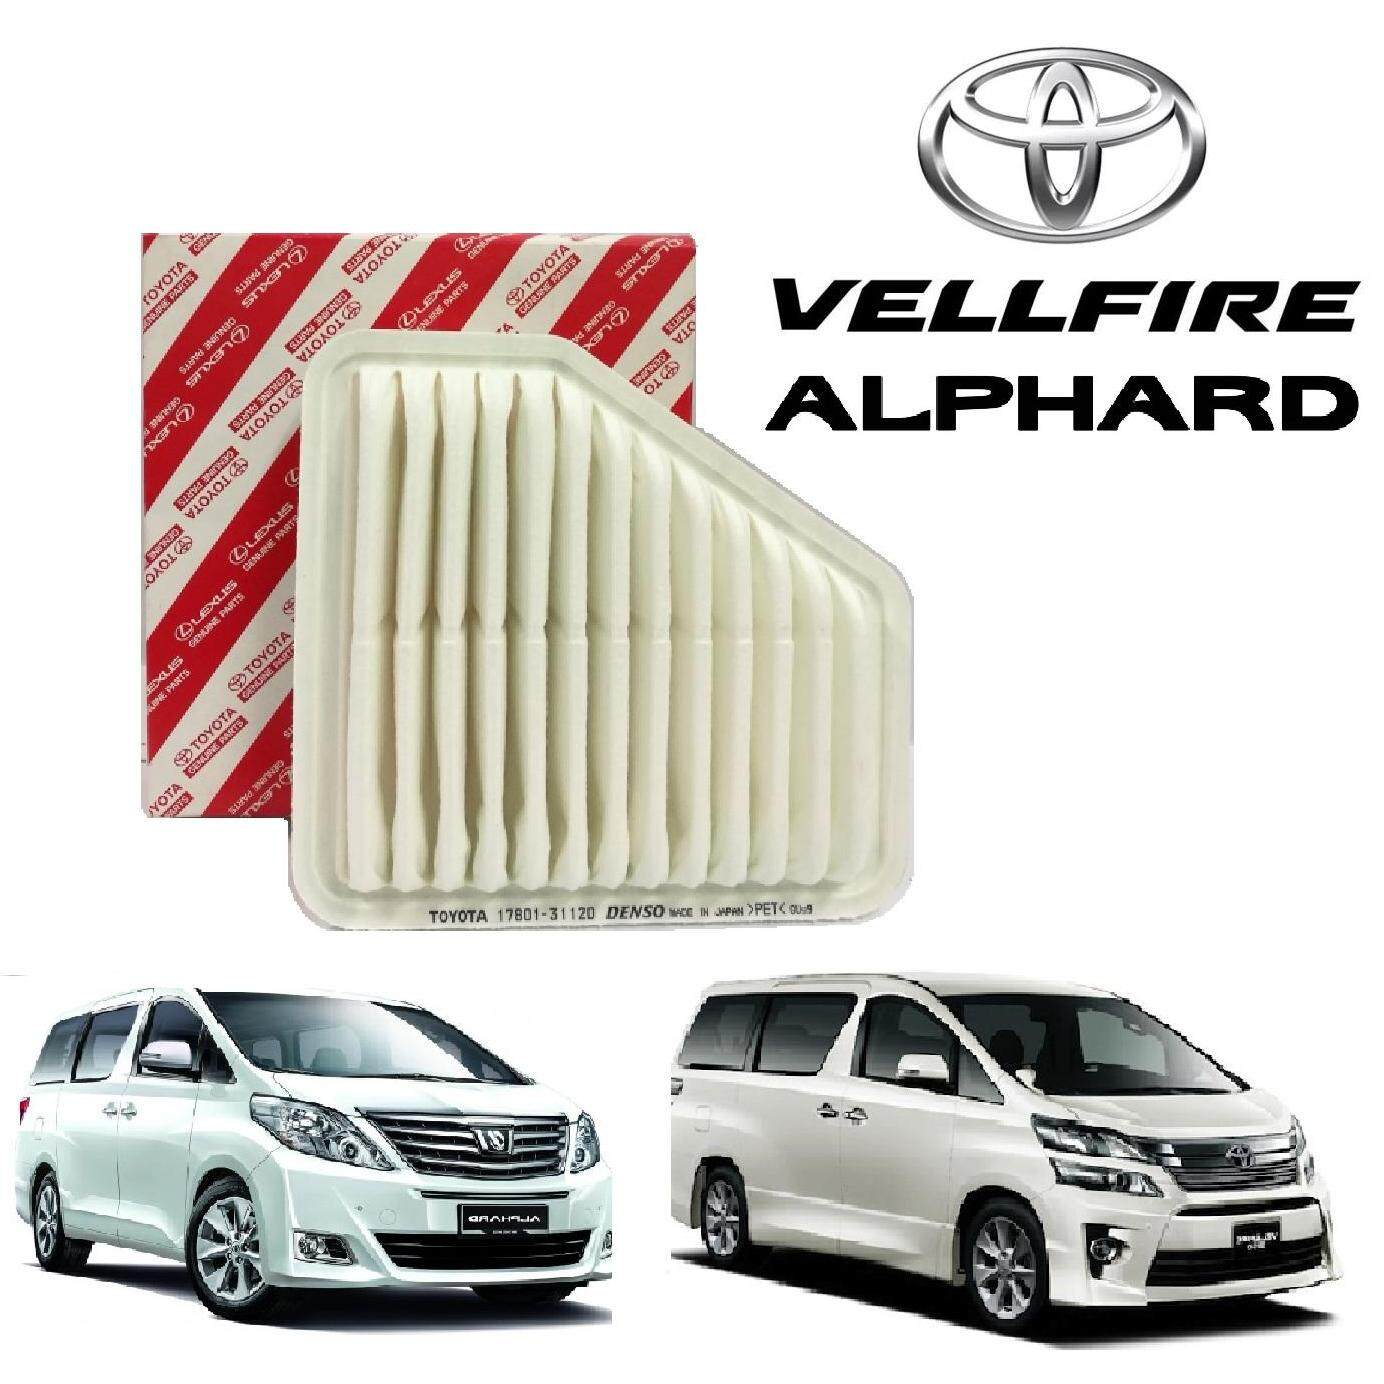 Toyota Auto Parts Spares Price In Malaysia Best Previa Fuel Filter Location Vellfire Alphard Anh20 High Quality Air 2008 2014